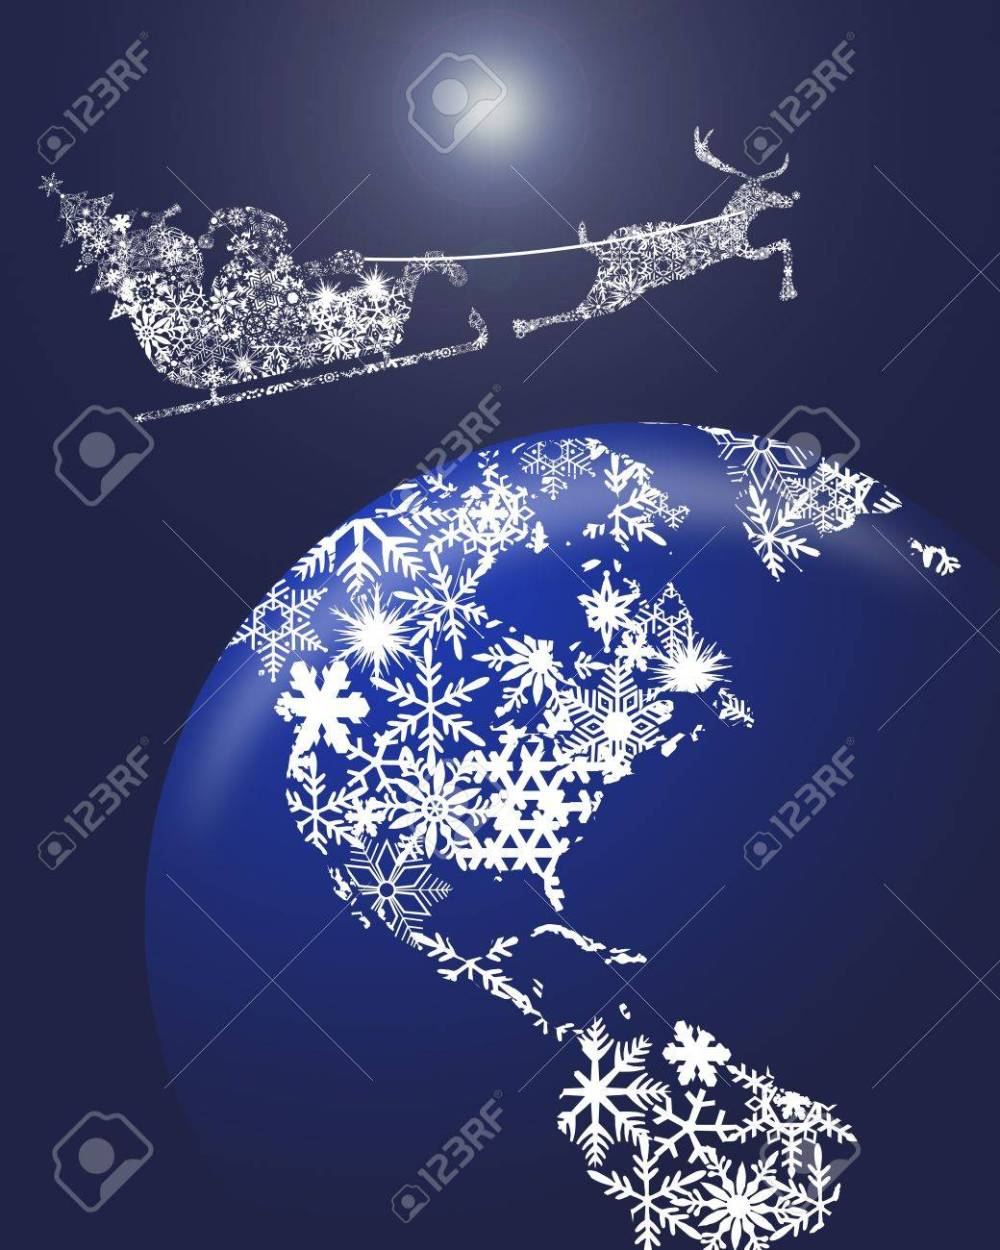 medium resolution of christmas in sleigh with reindeer over earth globe clipart illustration stock illustration 10871725